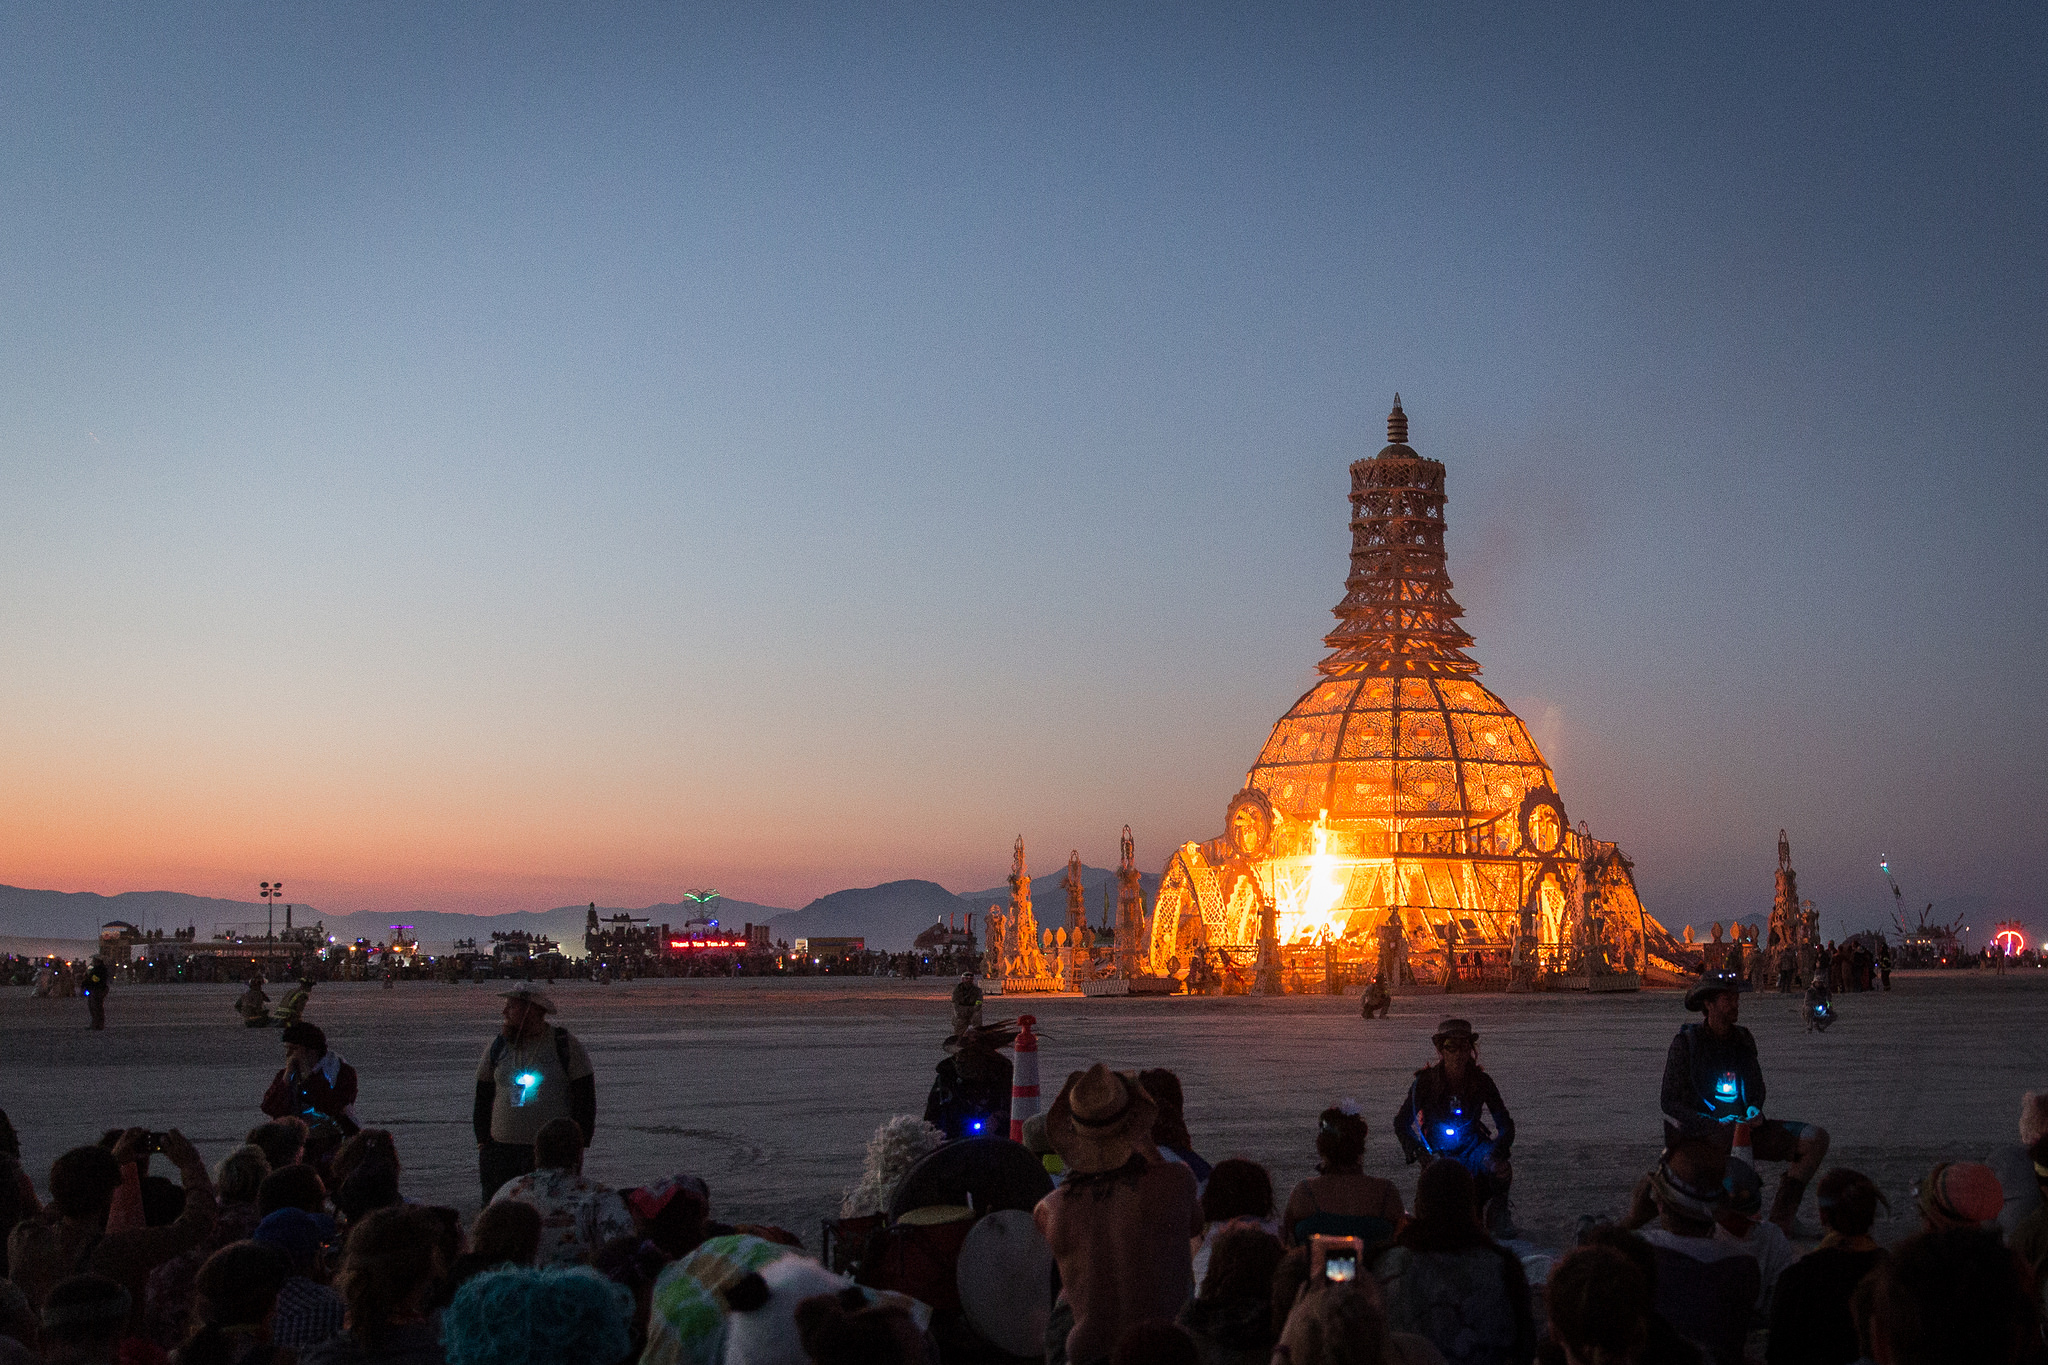 Burning Man 2014, Gwen Schroeder August 31, 2014